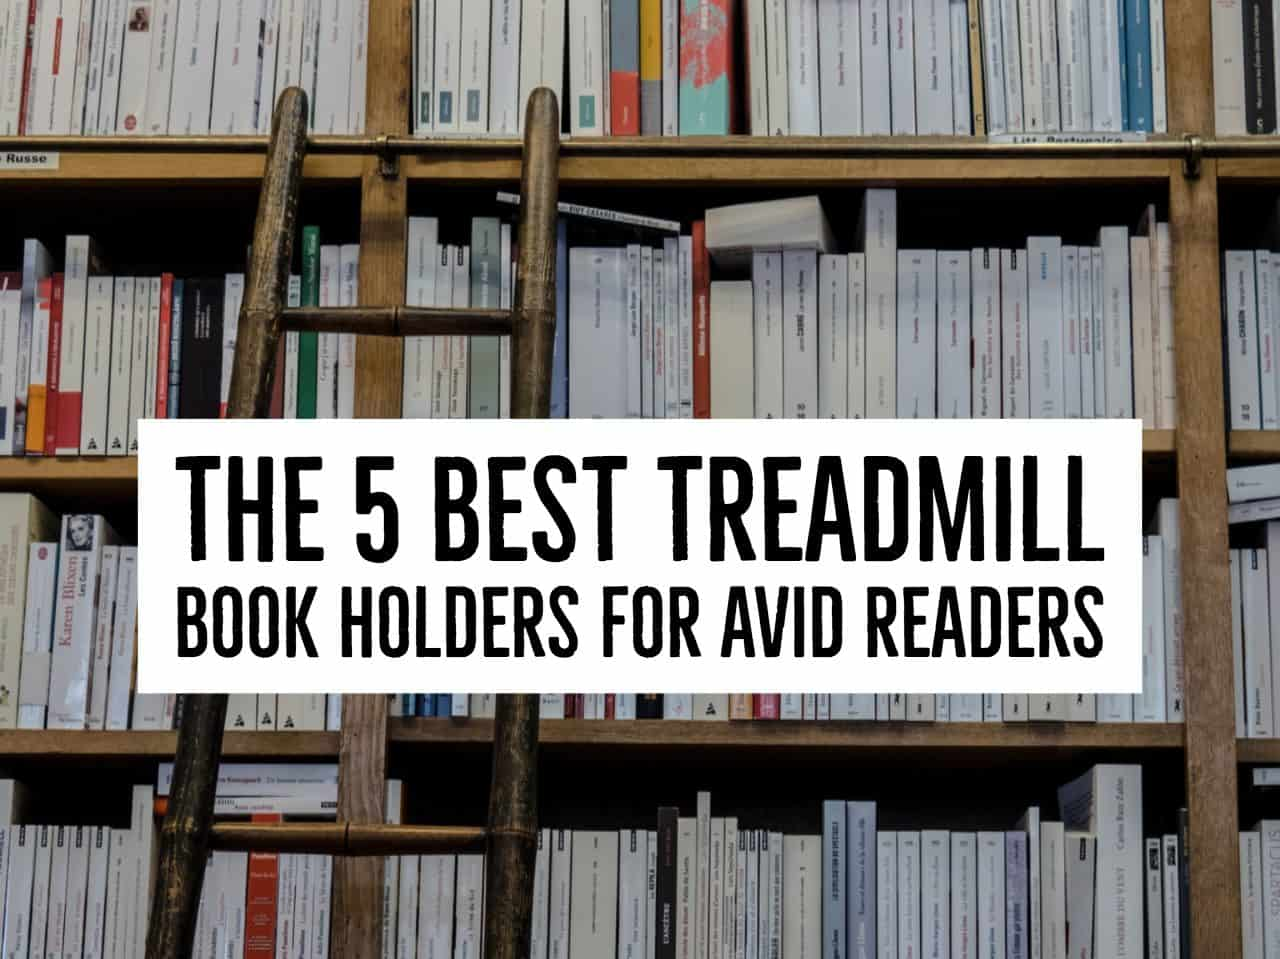 The treadmill book holder is an add-on to a treadmill that allows the person to read while exercising. For many runners, a treadmill book holder is a motivational tool to help them through workouts on this exercise machine. Here are the five best treadmill book holders for avid readers